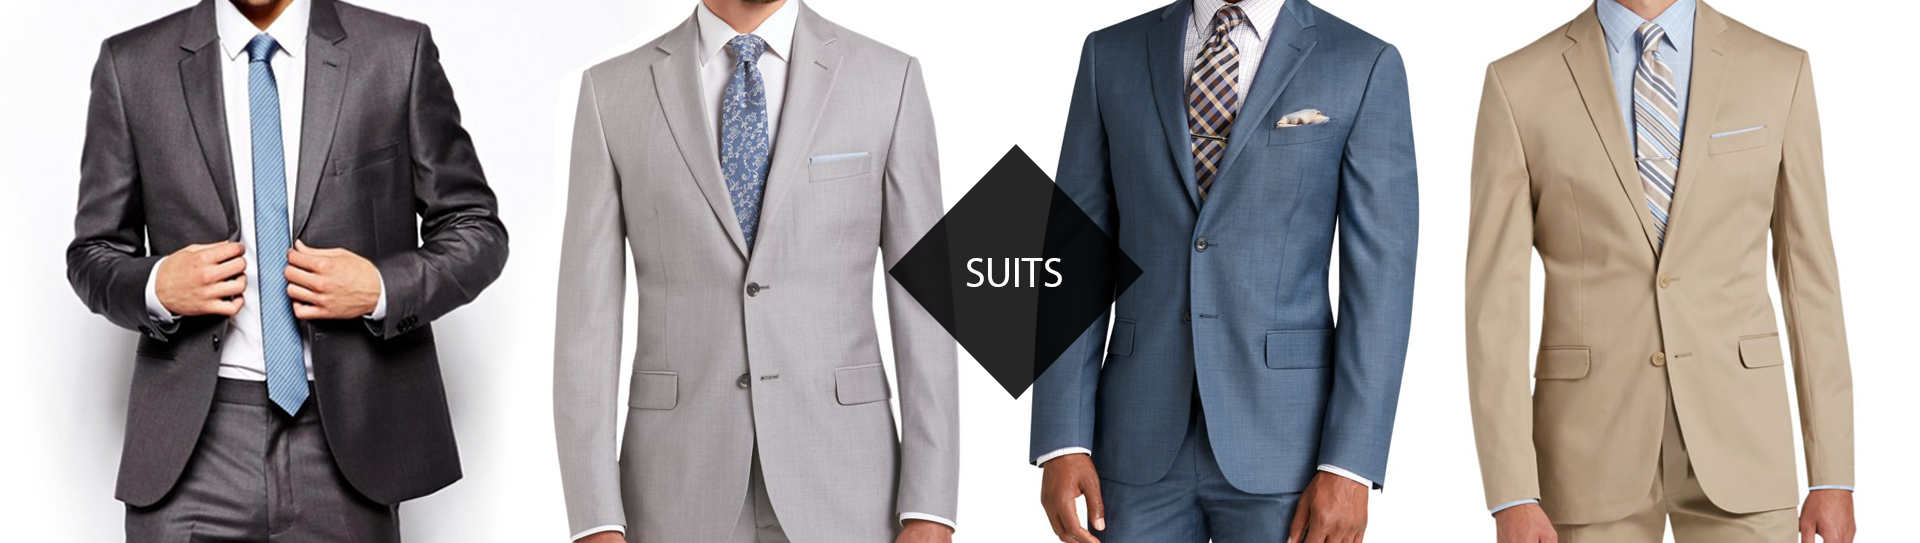 Phoenix Tuxedo Rental and Suits